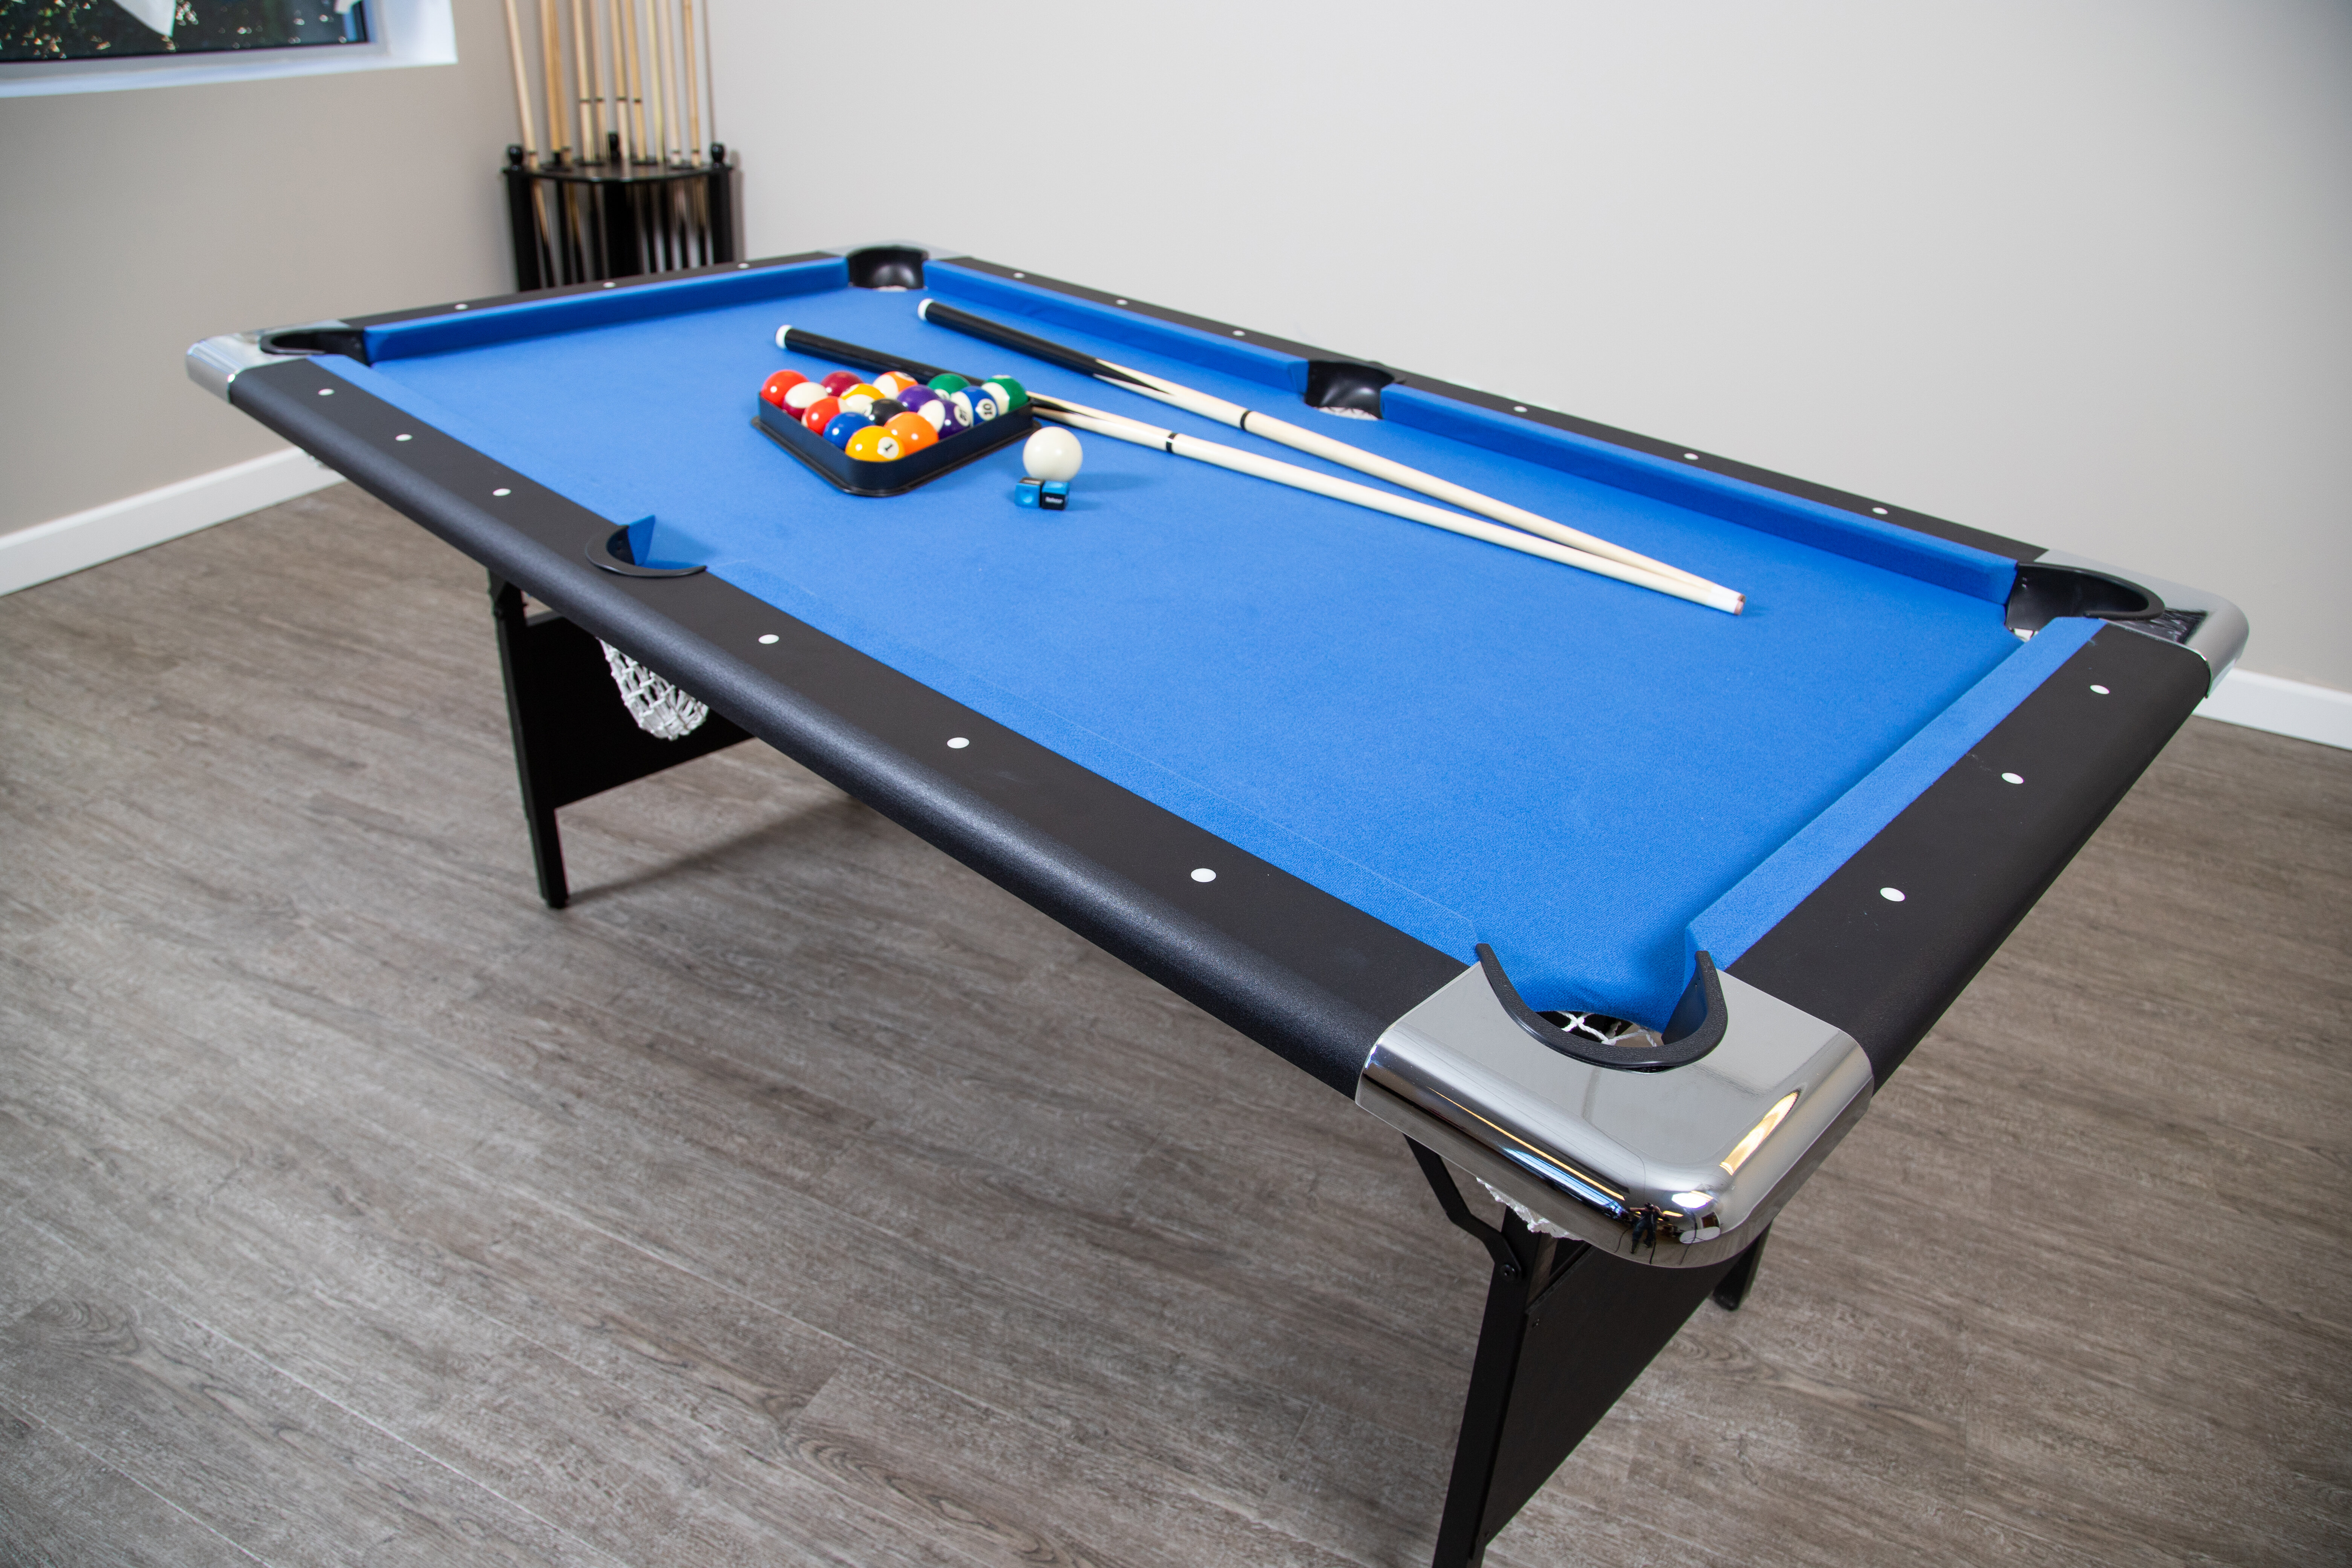 Hathaway Games Fairmont 6.3' Pool Table & Reviews